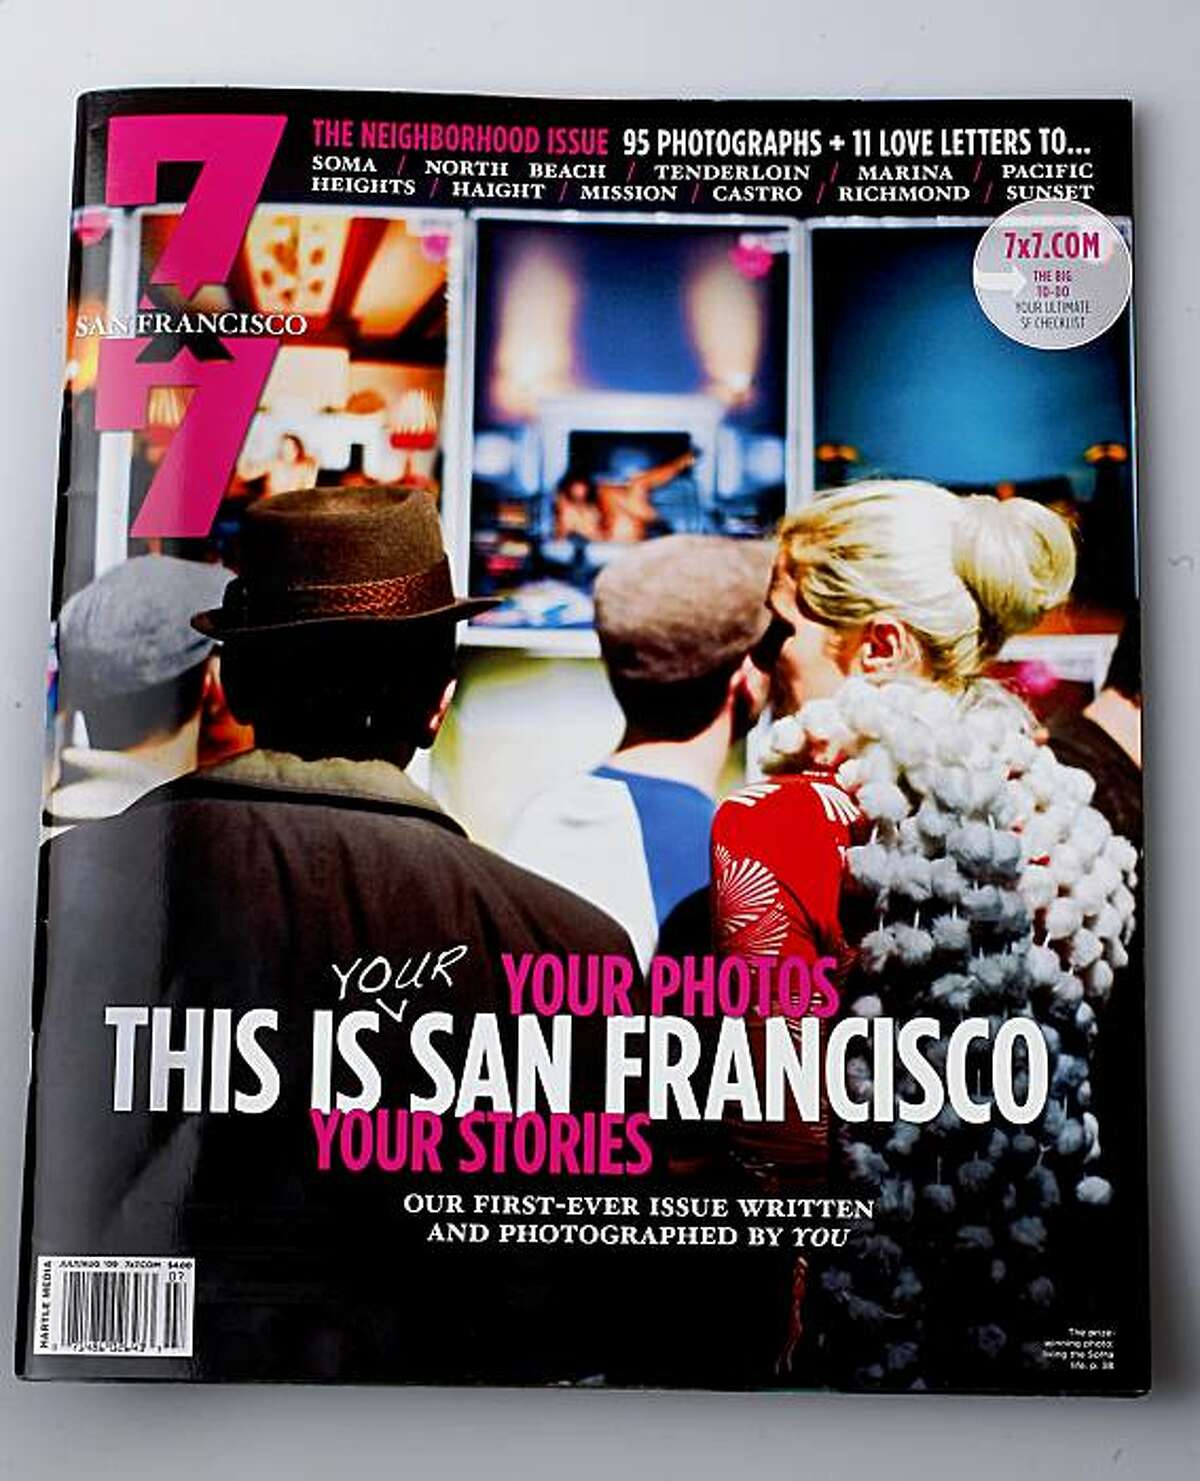 The cover of the August 7X7 magazine. The newest edition of 7X7 magazine features photographs taken by local people in a display of San Francisco neighborhoods.